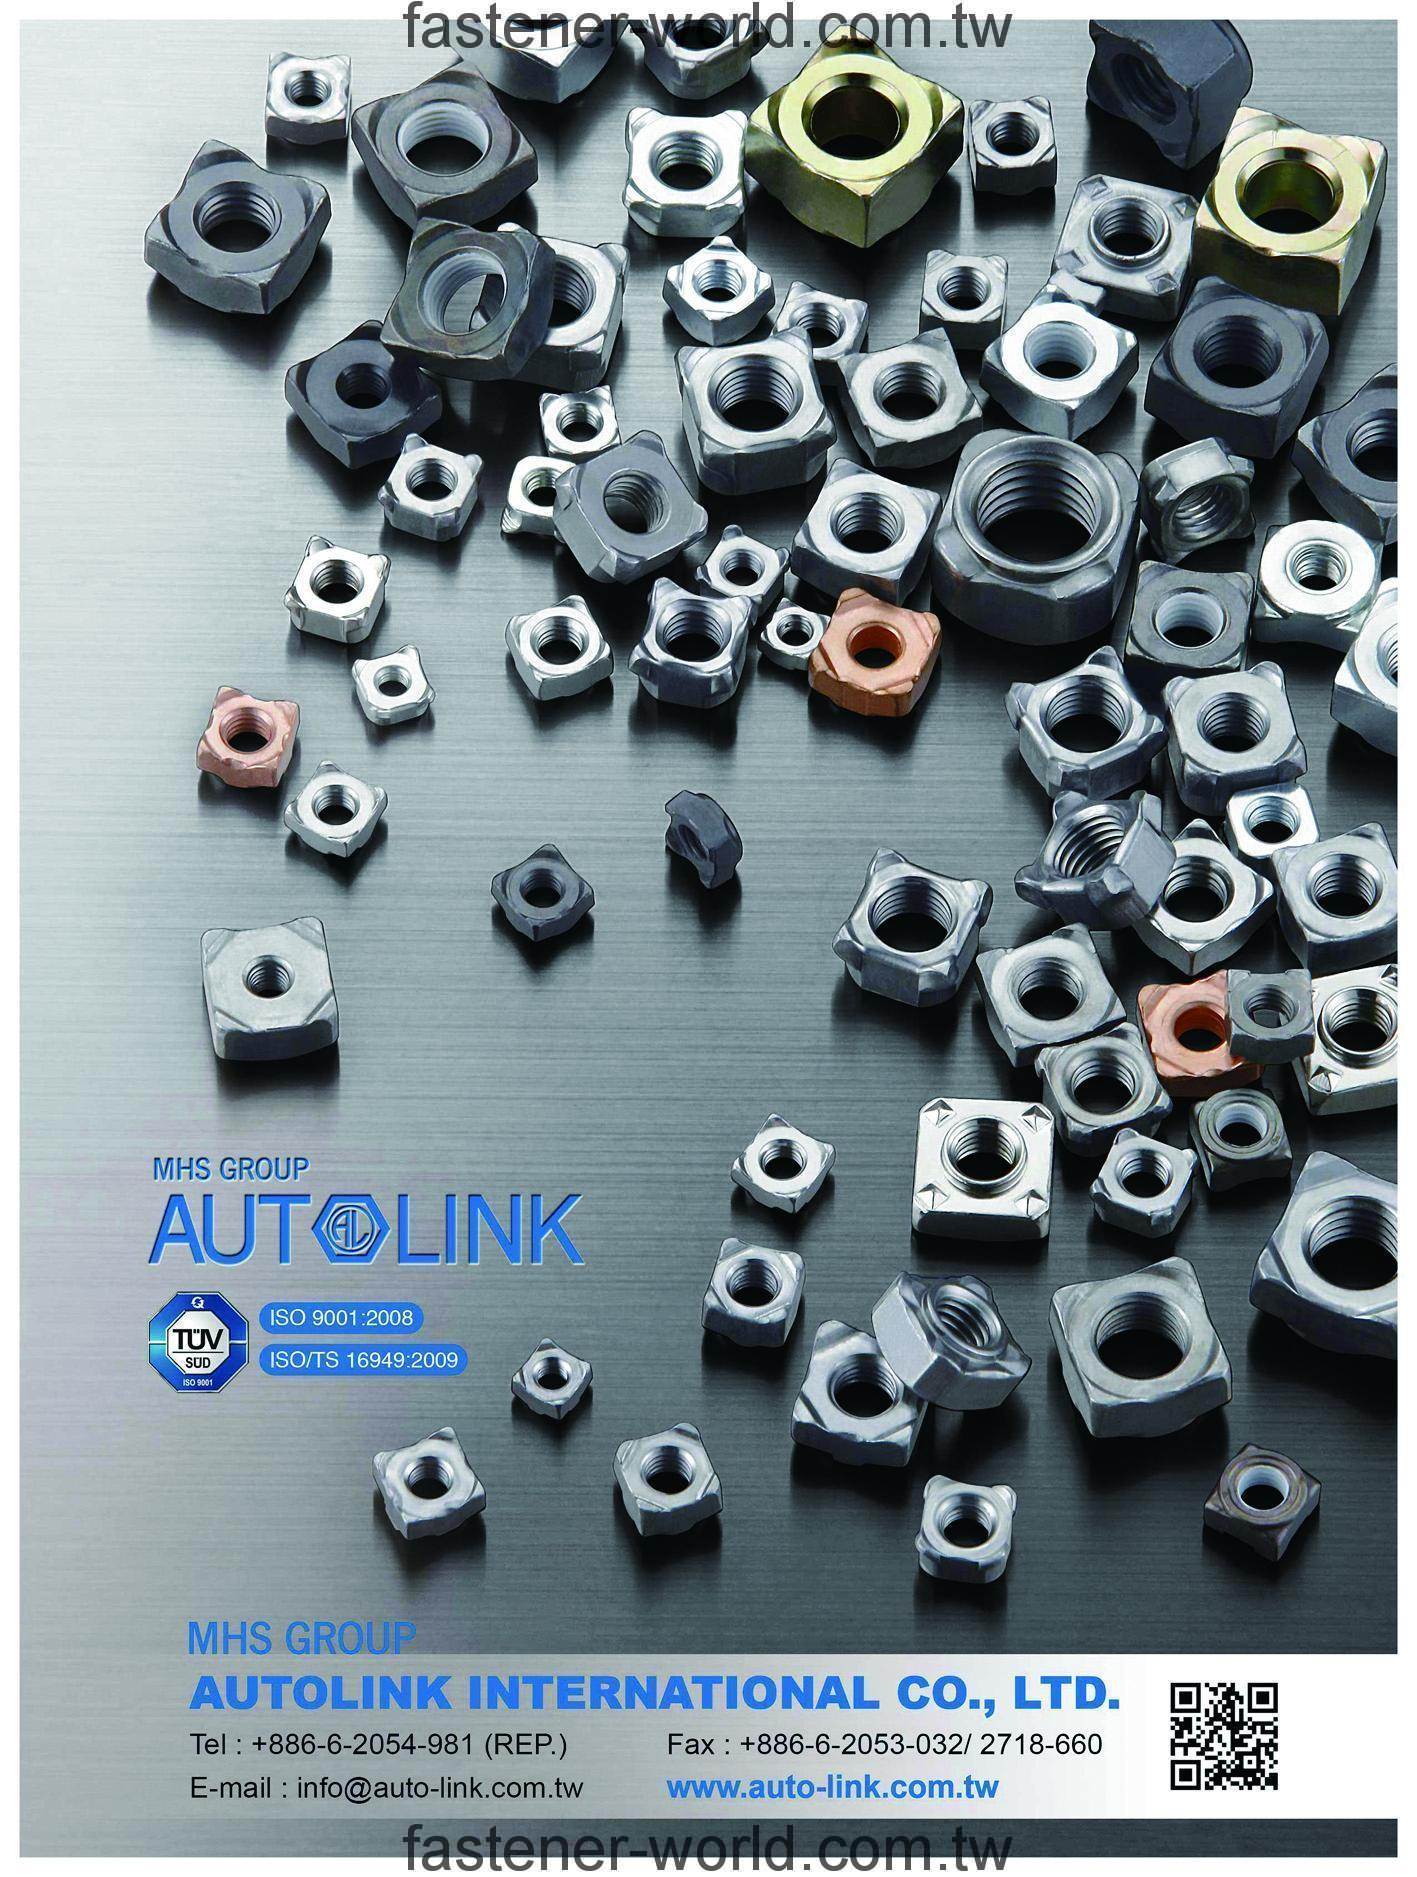 AUTOLINK INTERNATIONAL CO., LTD. Online Catalogues